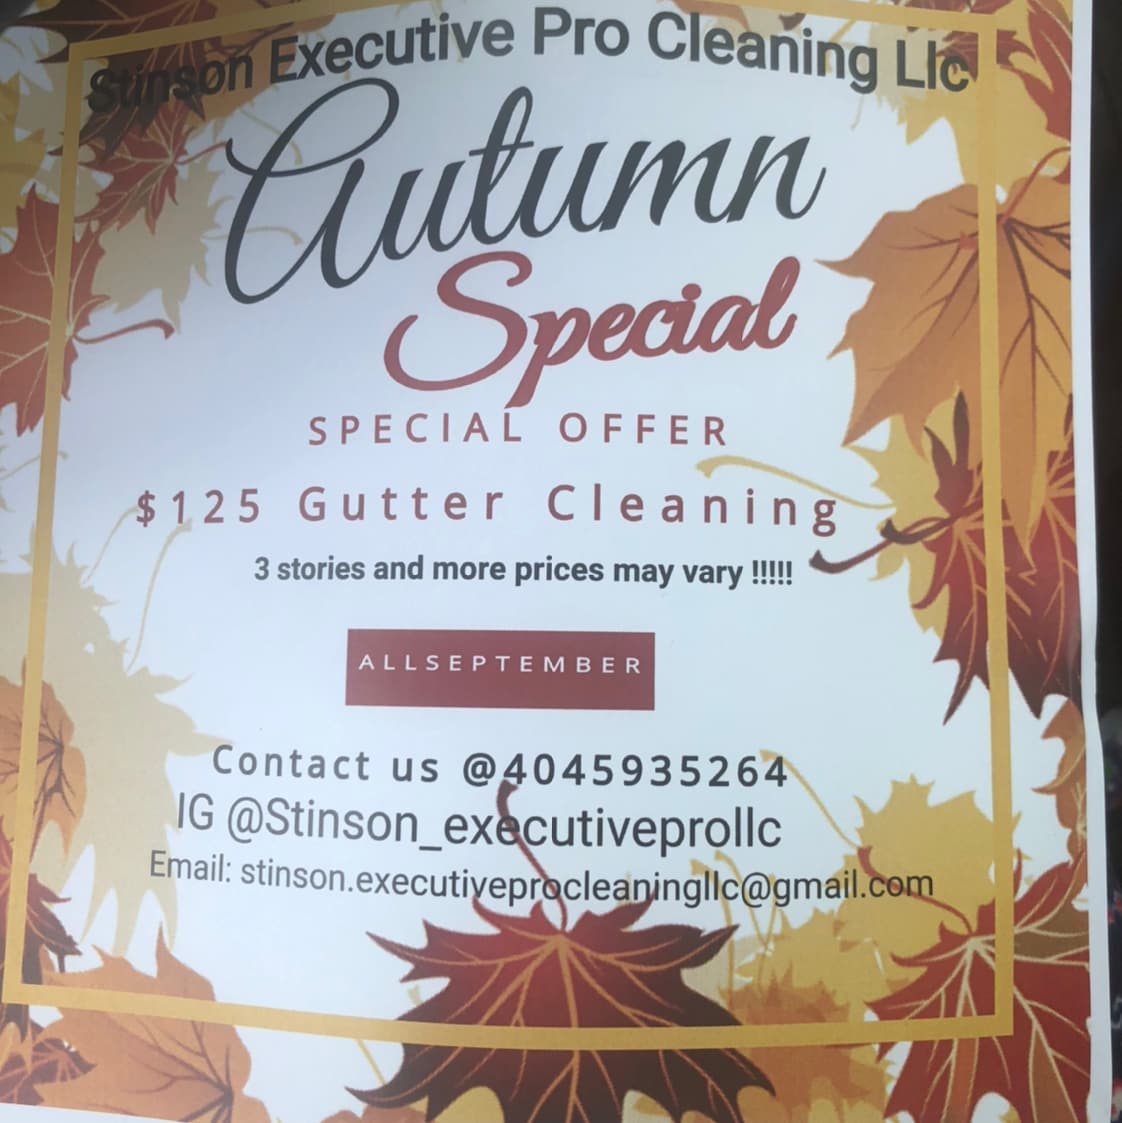 Stinson's executive pro cleaning Services llc